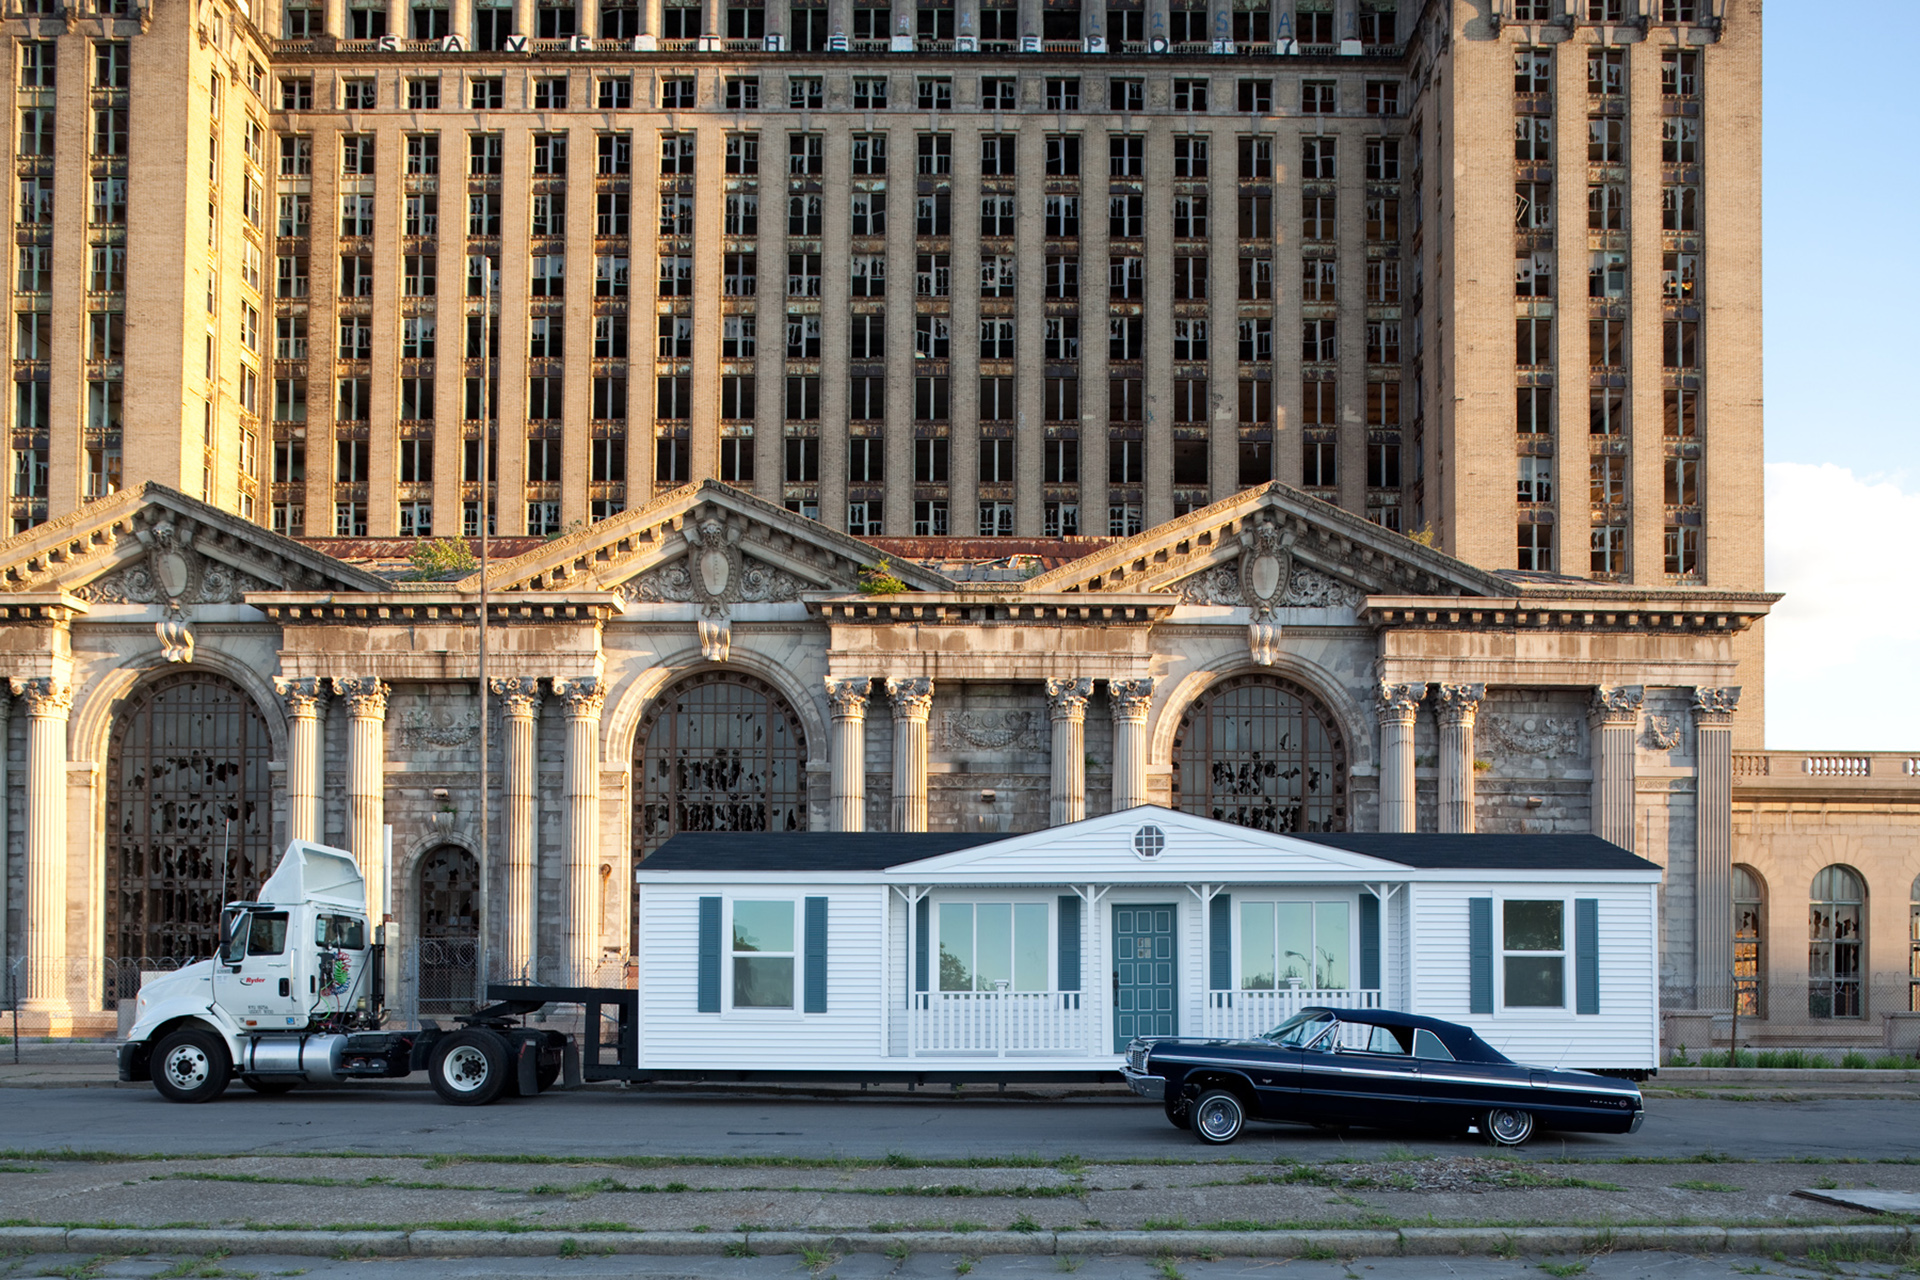 Mobile Homestead in front of the abandoned Michigan Central Station, Detroit, 2010